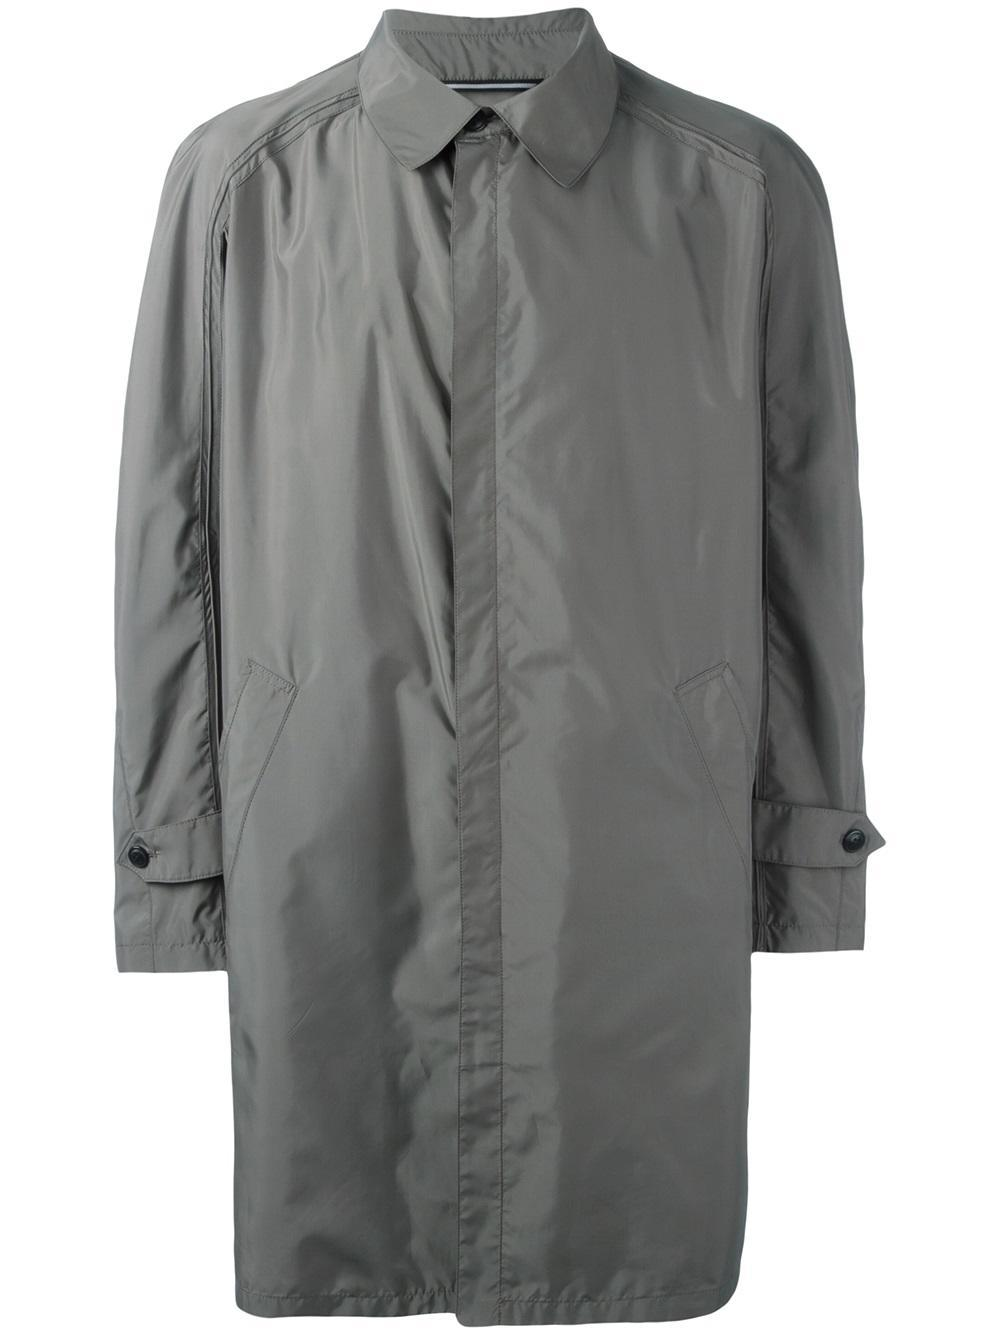 Lyst Armani Concealed Fastening Raincoat In Gray For Men